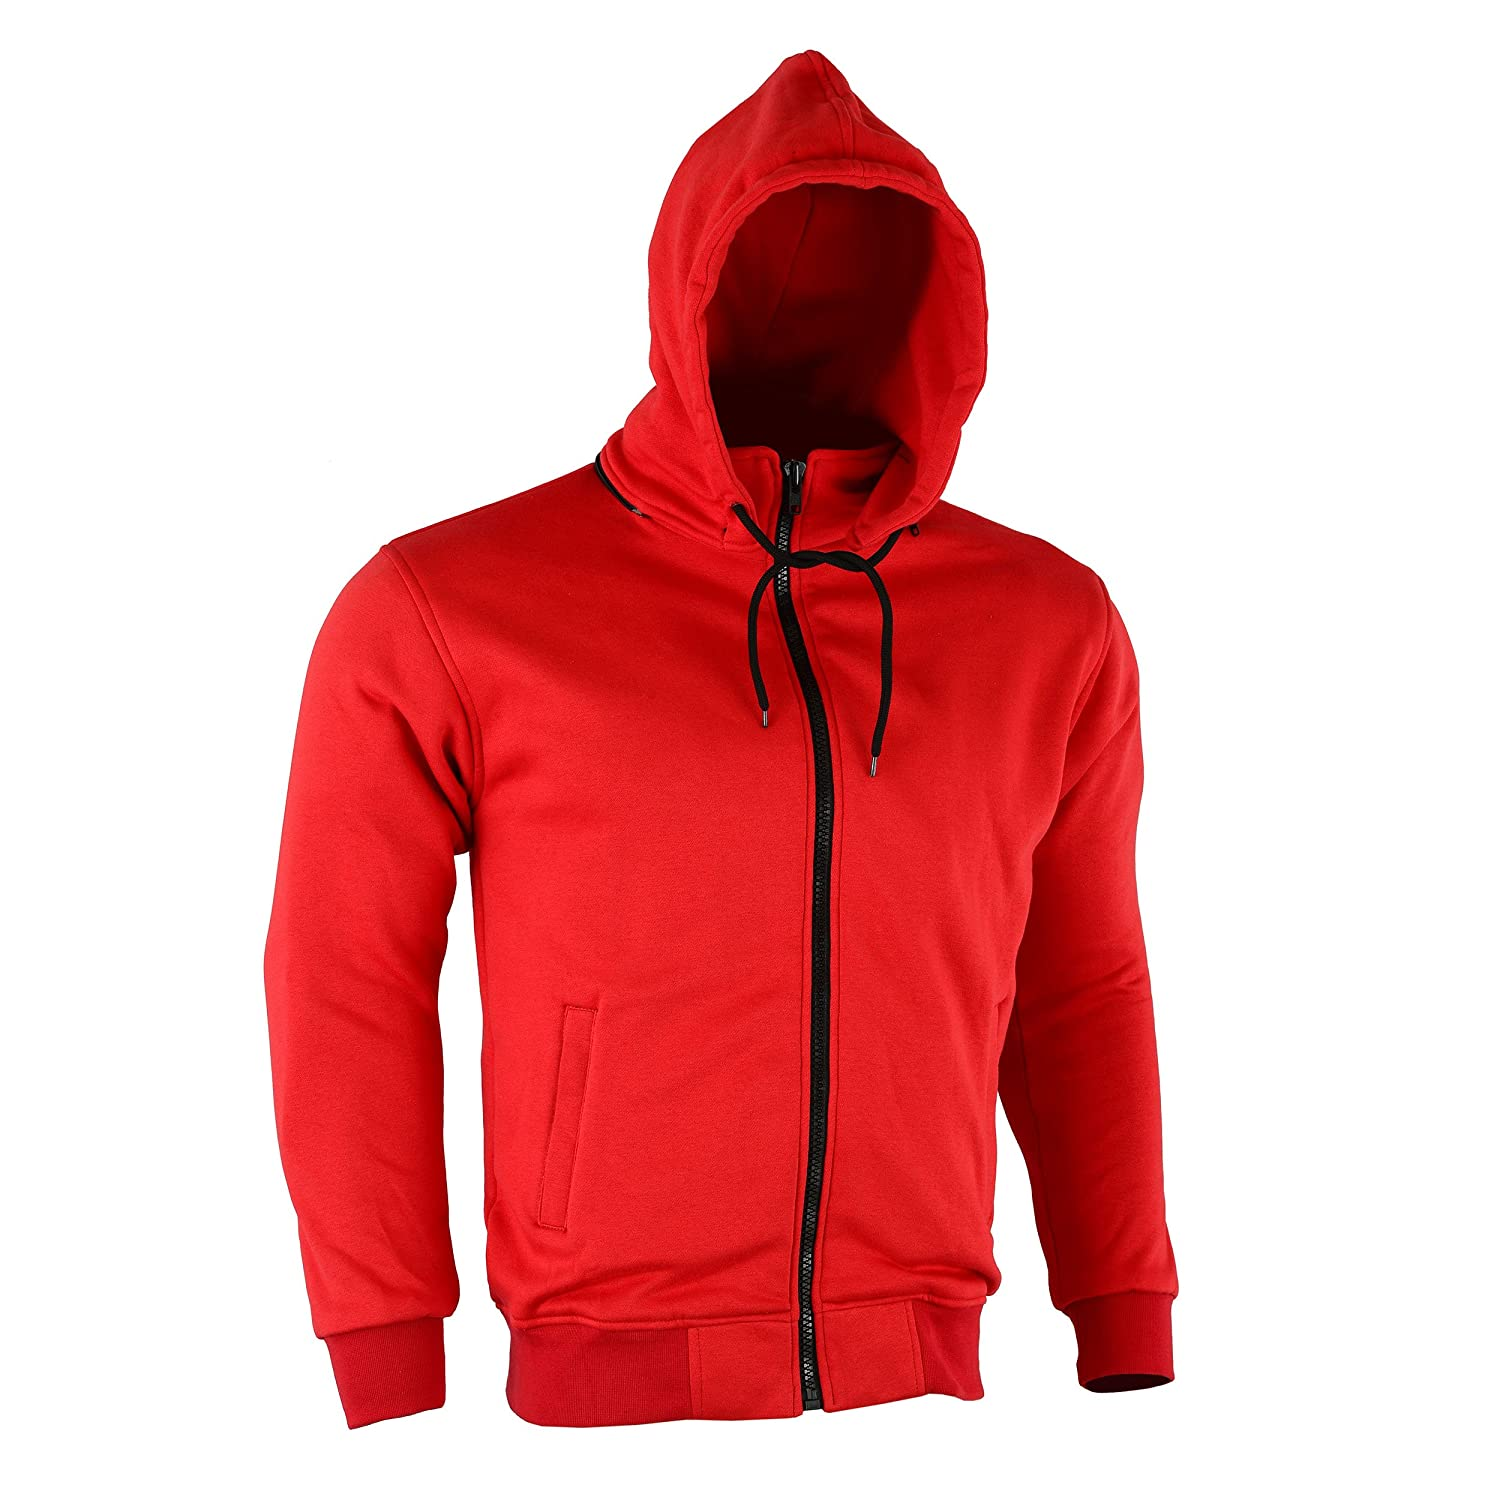 Motorcycle Motorbike Protective Casual Summer Camouflage CE Approved Removable Bikers Zip Up Fleece Hoodie Hood Jacket S 5XL